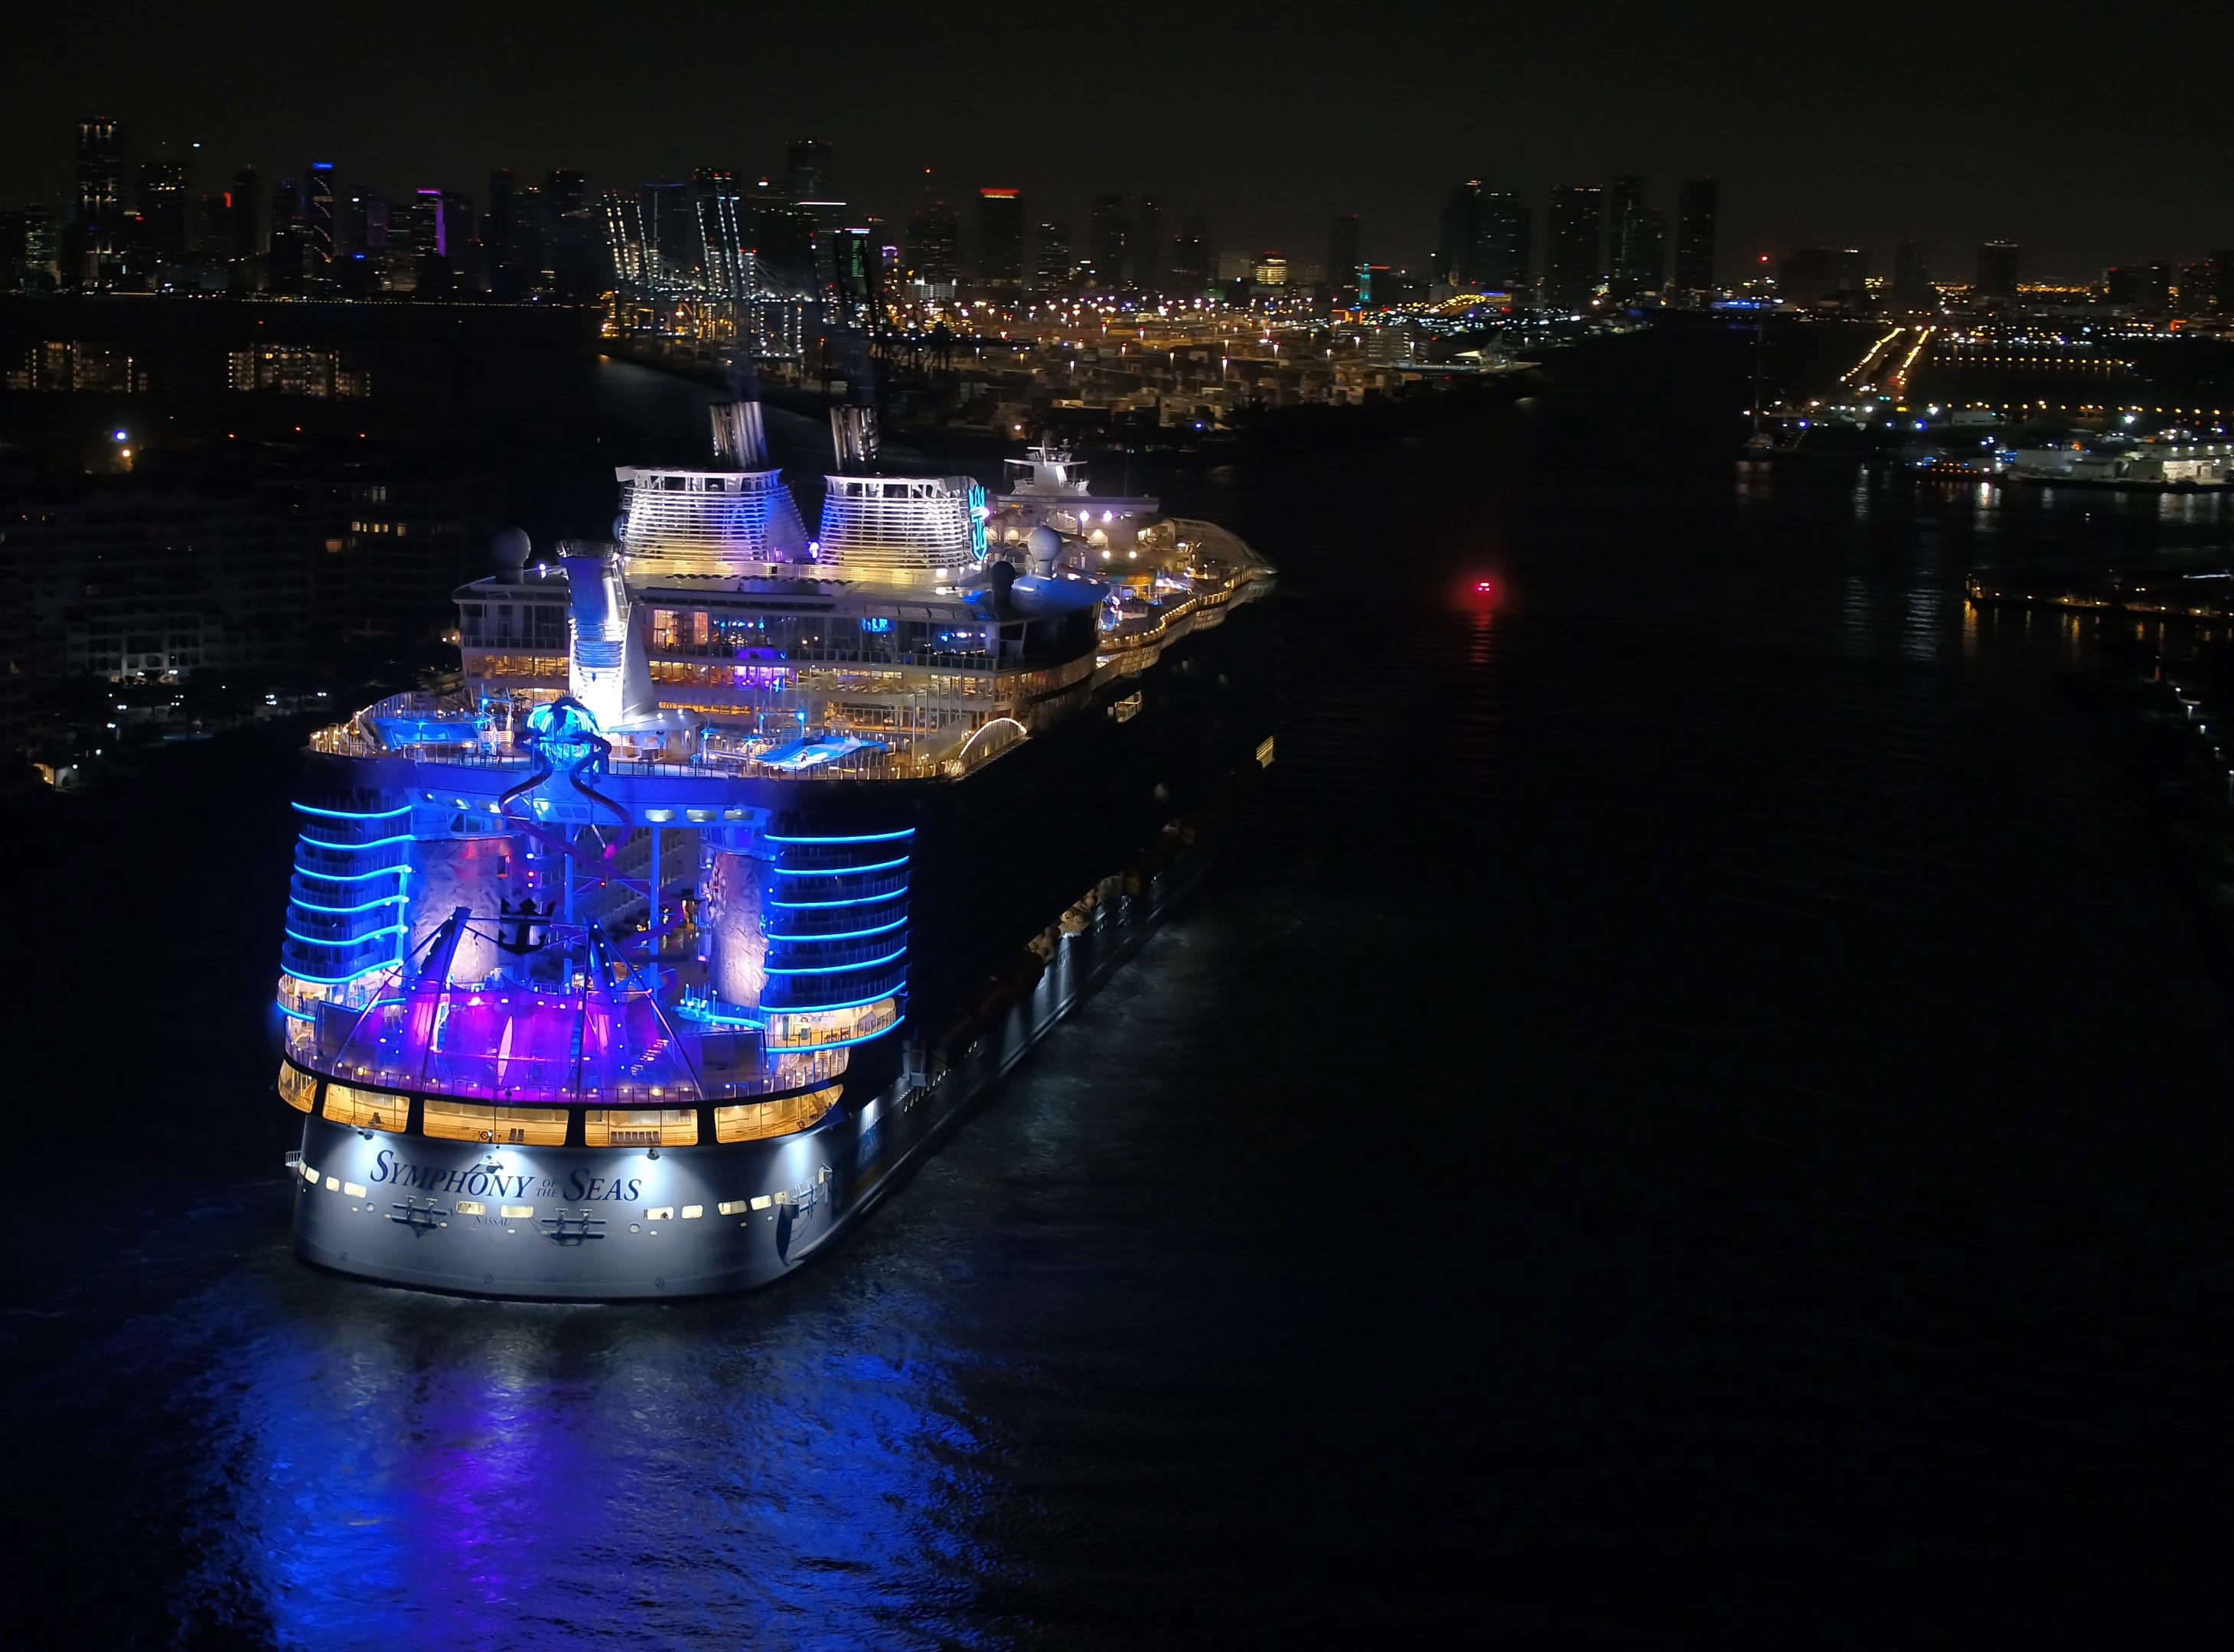 Symphony of the Seas will be christened at the Port of Miami on Nov. 15, 2018 by actors Carlos and Alexa PenaVega, along with their 17-month-old son Ocean.